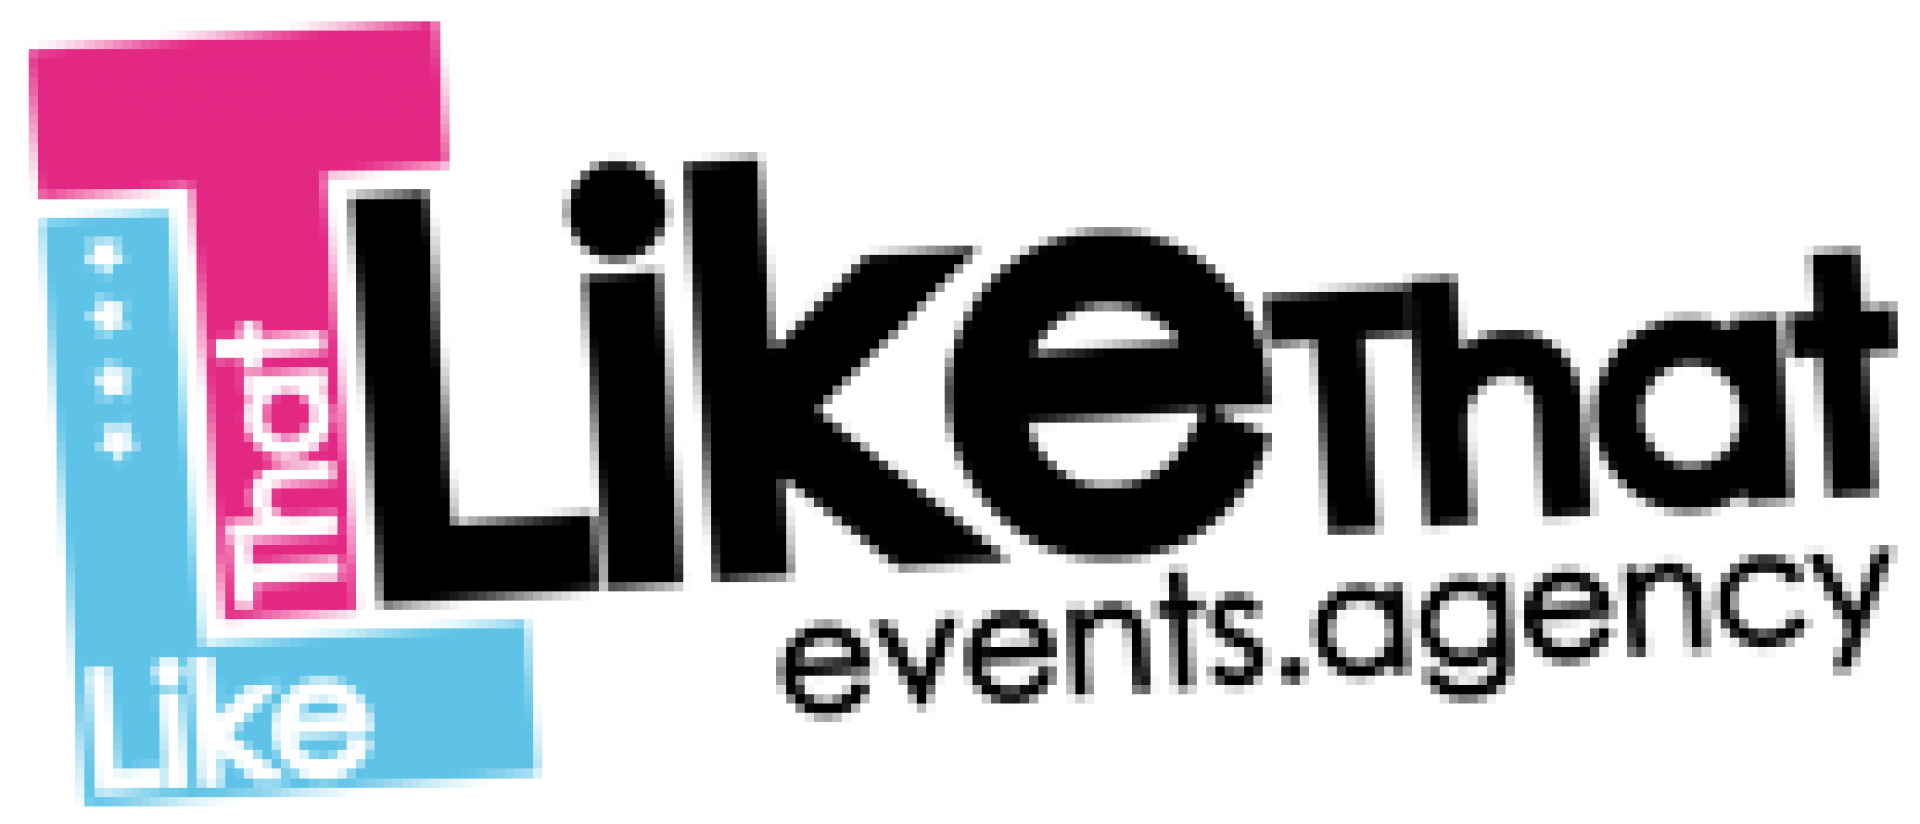 Like that event 01